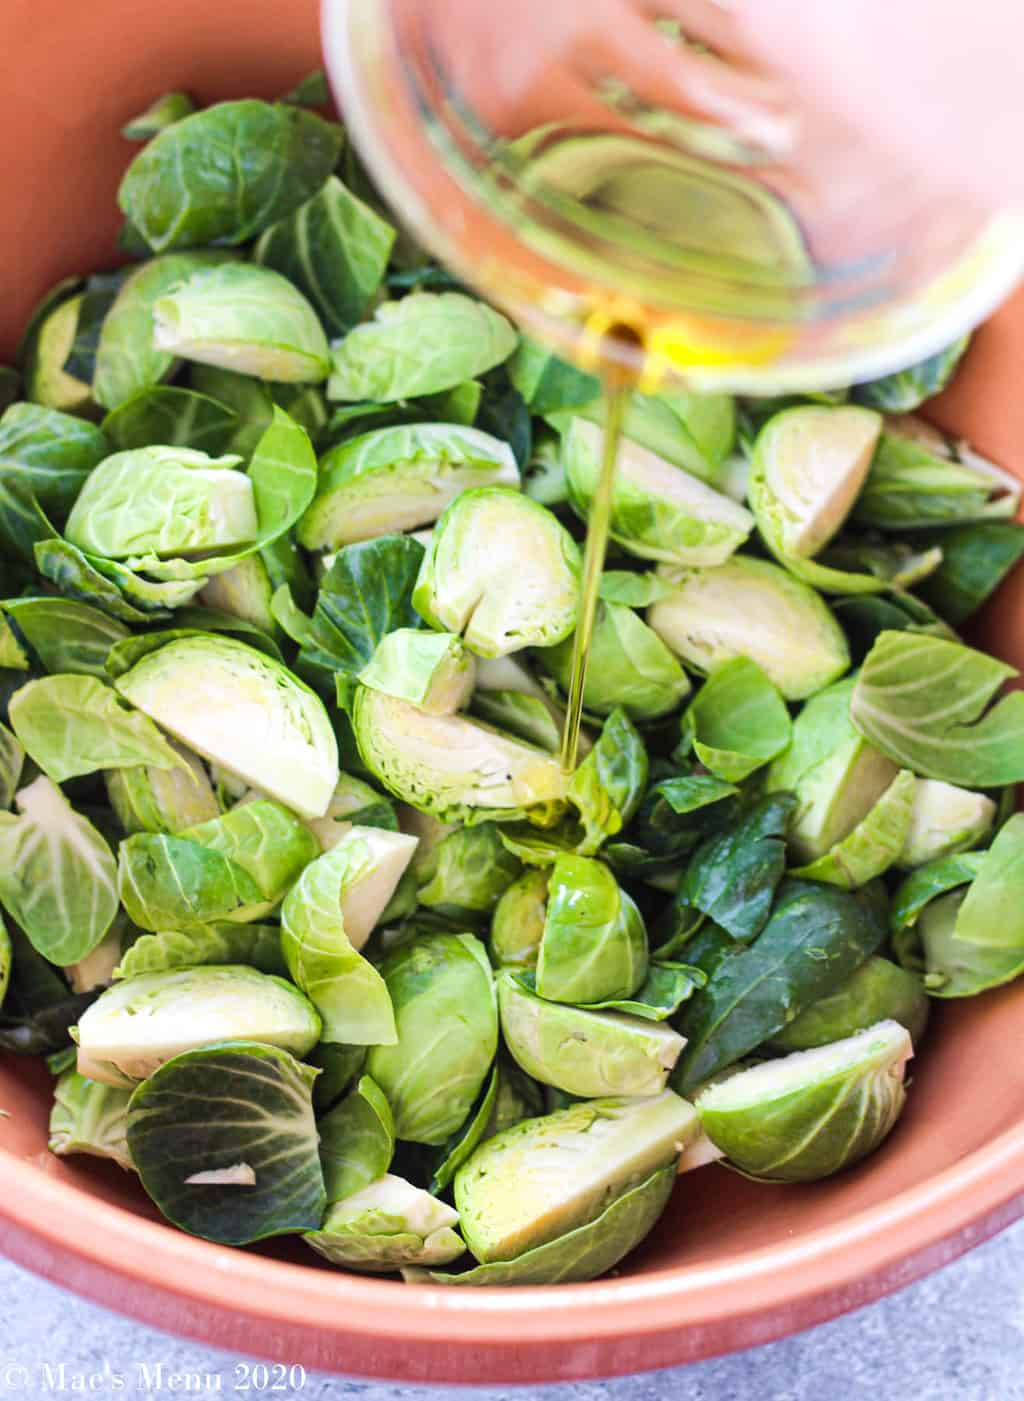 Pouring oil into a large bowl of brussels sprouts